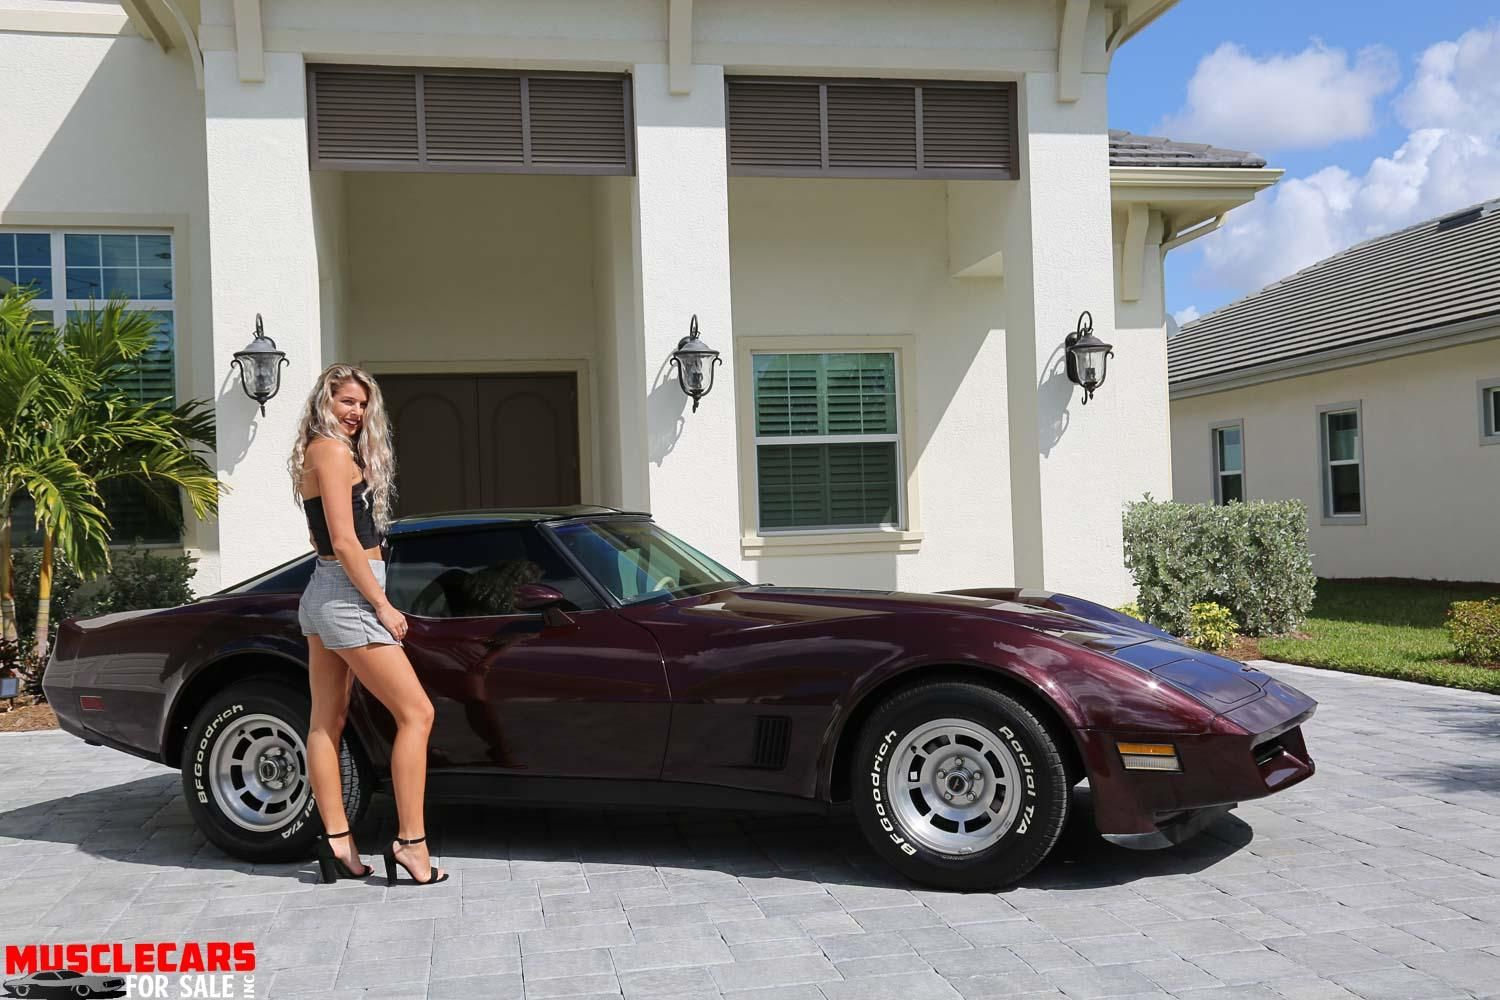 Used 1980 Chevrolet Corvette For Sale (19,900) Muscle